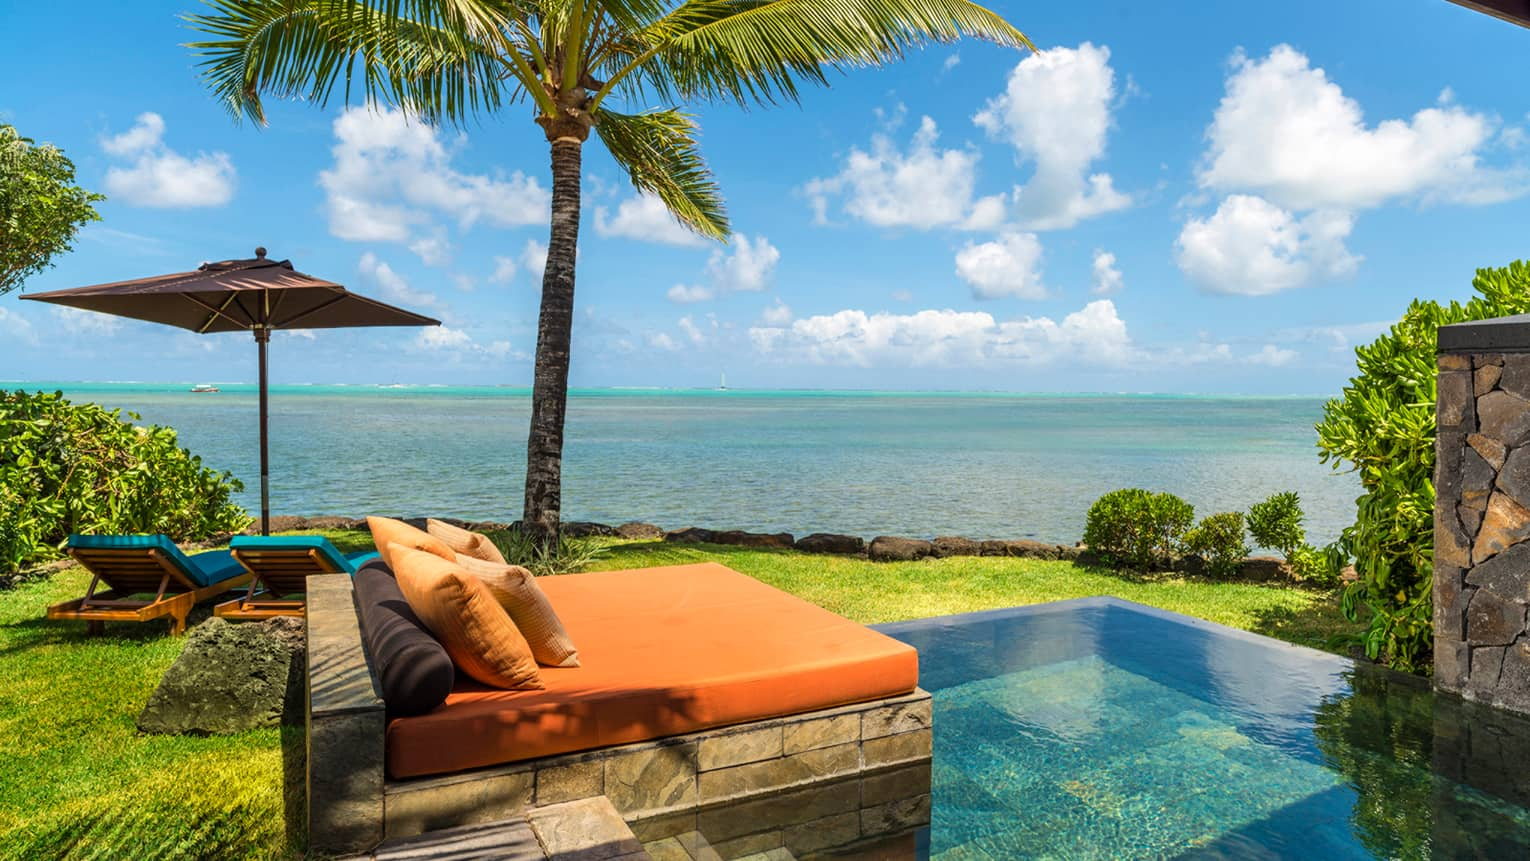 Villa patio, orange lounge bed over stone plunge pool under palm tree, ocean view